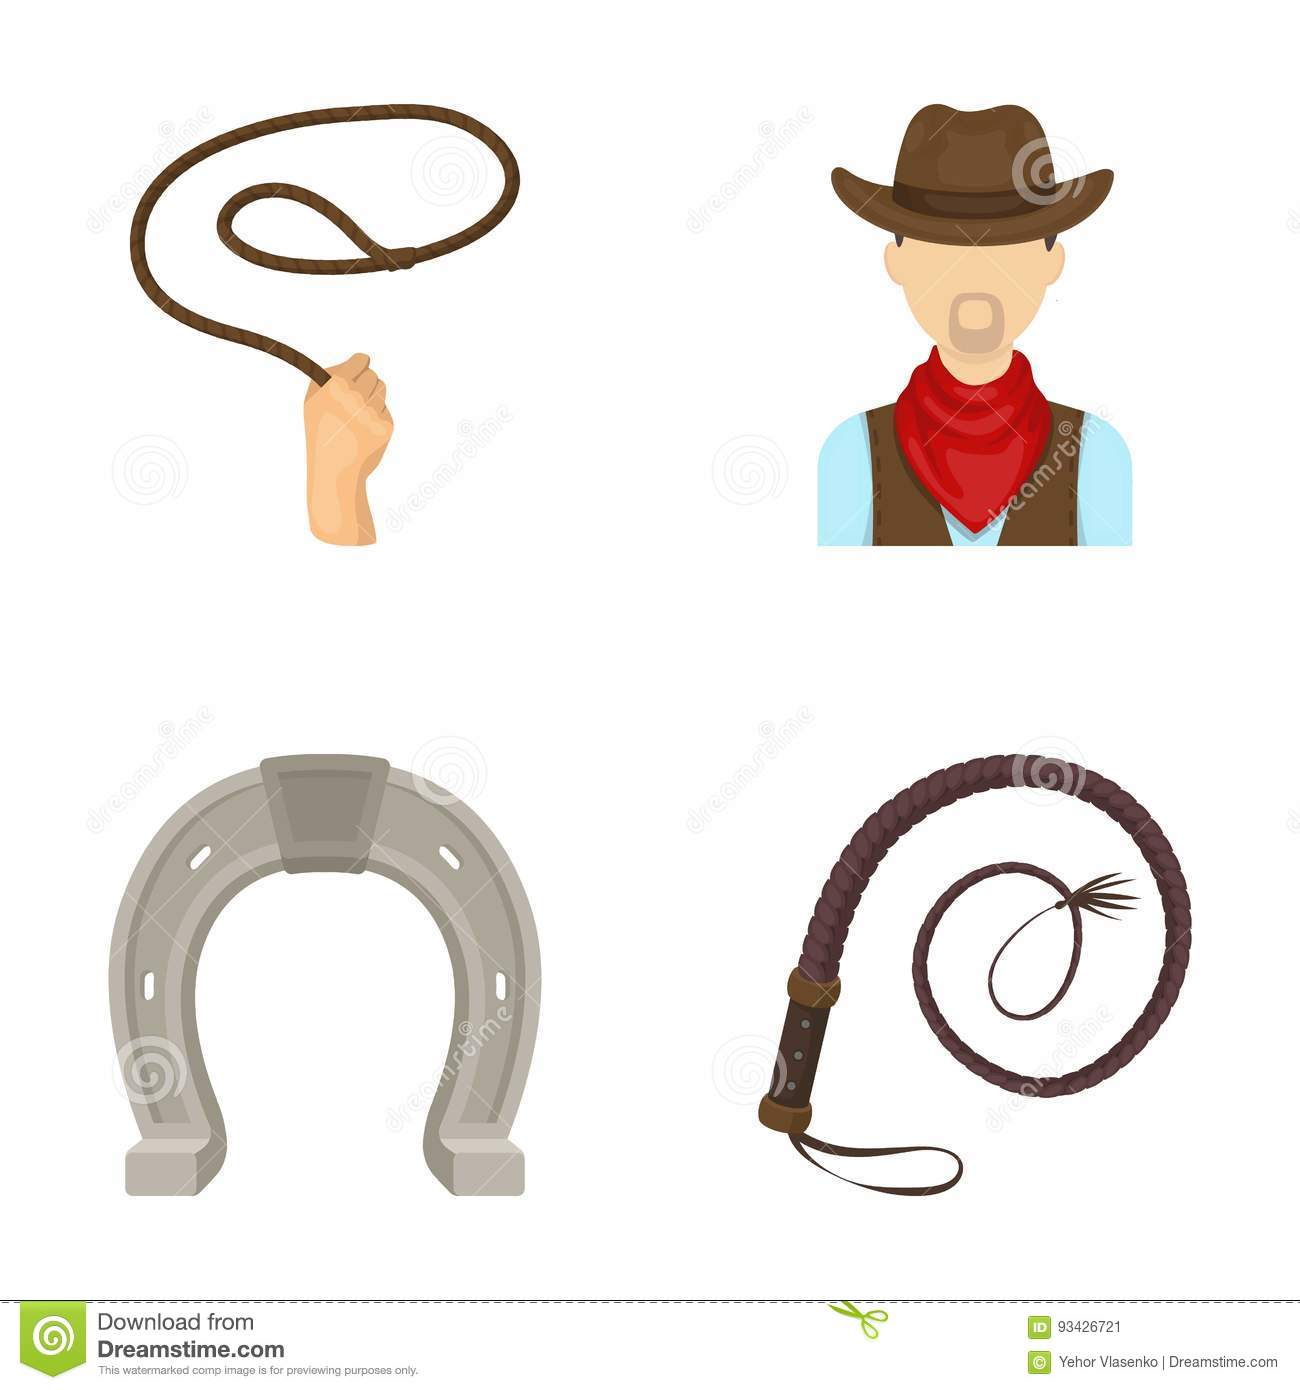 Hand lasso, cowboy, horseshoe, whip. Rodeo set collection icons in cartoon style vector symbol stock illustration web.